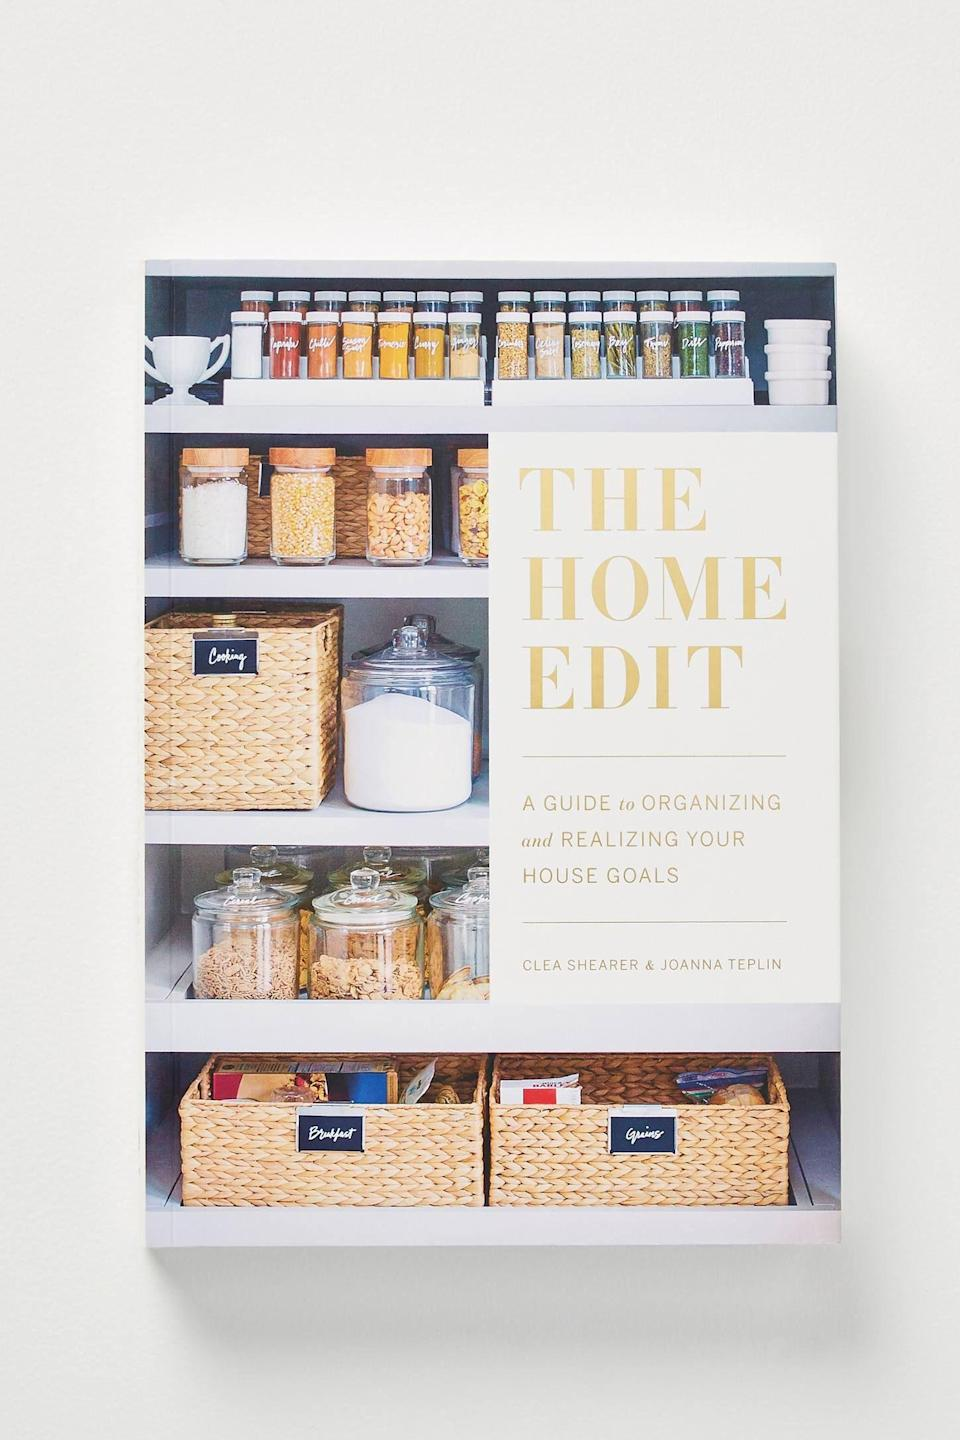 """<p><strong>Anthropologie</strong></p><p>anthropologie.com</p><p><strong>$24.99</strong></p><p><a href=""""https://go.redirectingat.com?id=74968X1596630&url=https%3A%2F%2Fwww.anthropologie.com%2Fshop%2Fthe-home-edit2&sref=https%3A%2F%2Fwww.seventeen.com%2Flife%2Ffriends-family%2Fg30140775%2Fgifts-for-mom-from-daughter%2F"""" rel=""""nofollow noopener"""" target=""""_blank"""" data-ylk=""""slk:Shop Now"""" class=""""link rapid-noclick-resp"""">Shop Now</a></p><p>If you're <em>really </em>struggling for a gift, just force her to watch <em>Get Organized With the Home Edit </em>on Netflix and then buy her this. Trust me.</p>"""